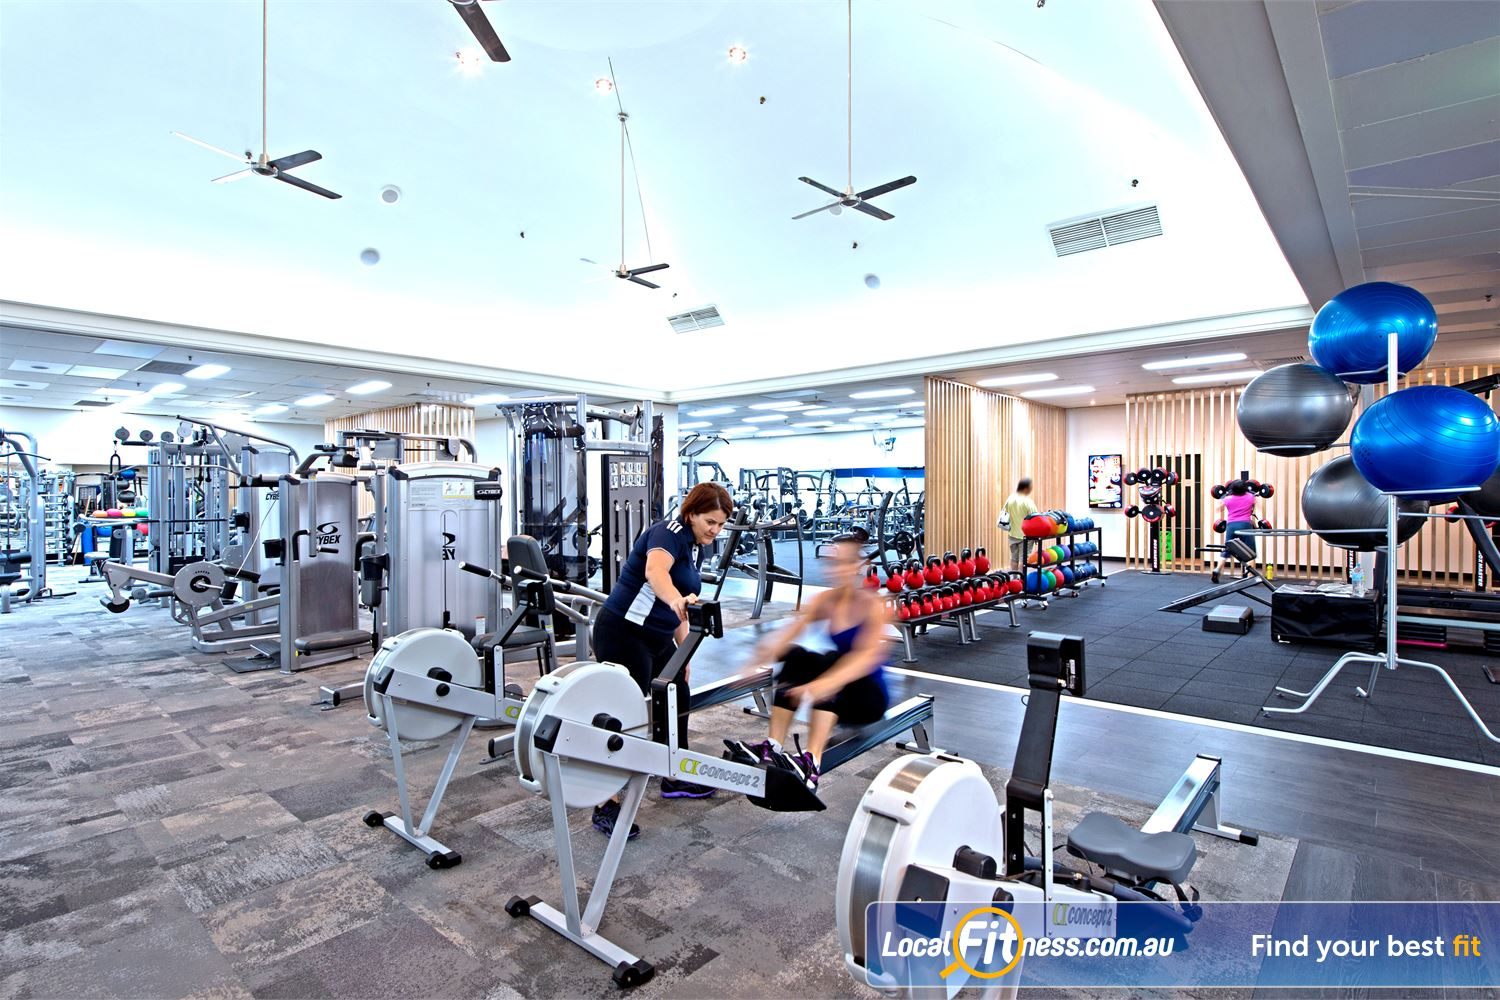 Goodlife Health Clubs Cottesloe Vary your cardio to include indoor rowing.